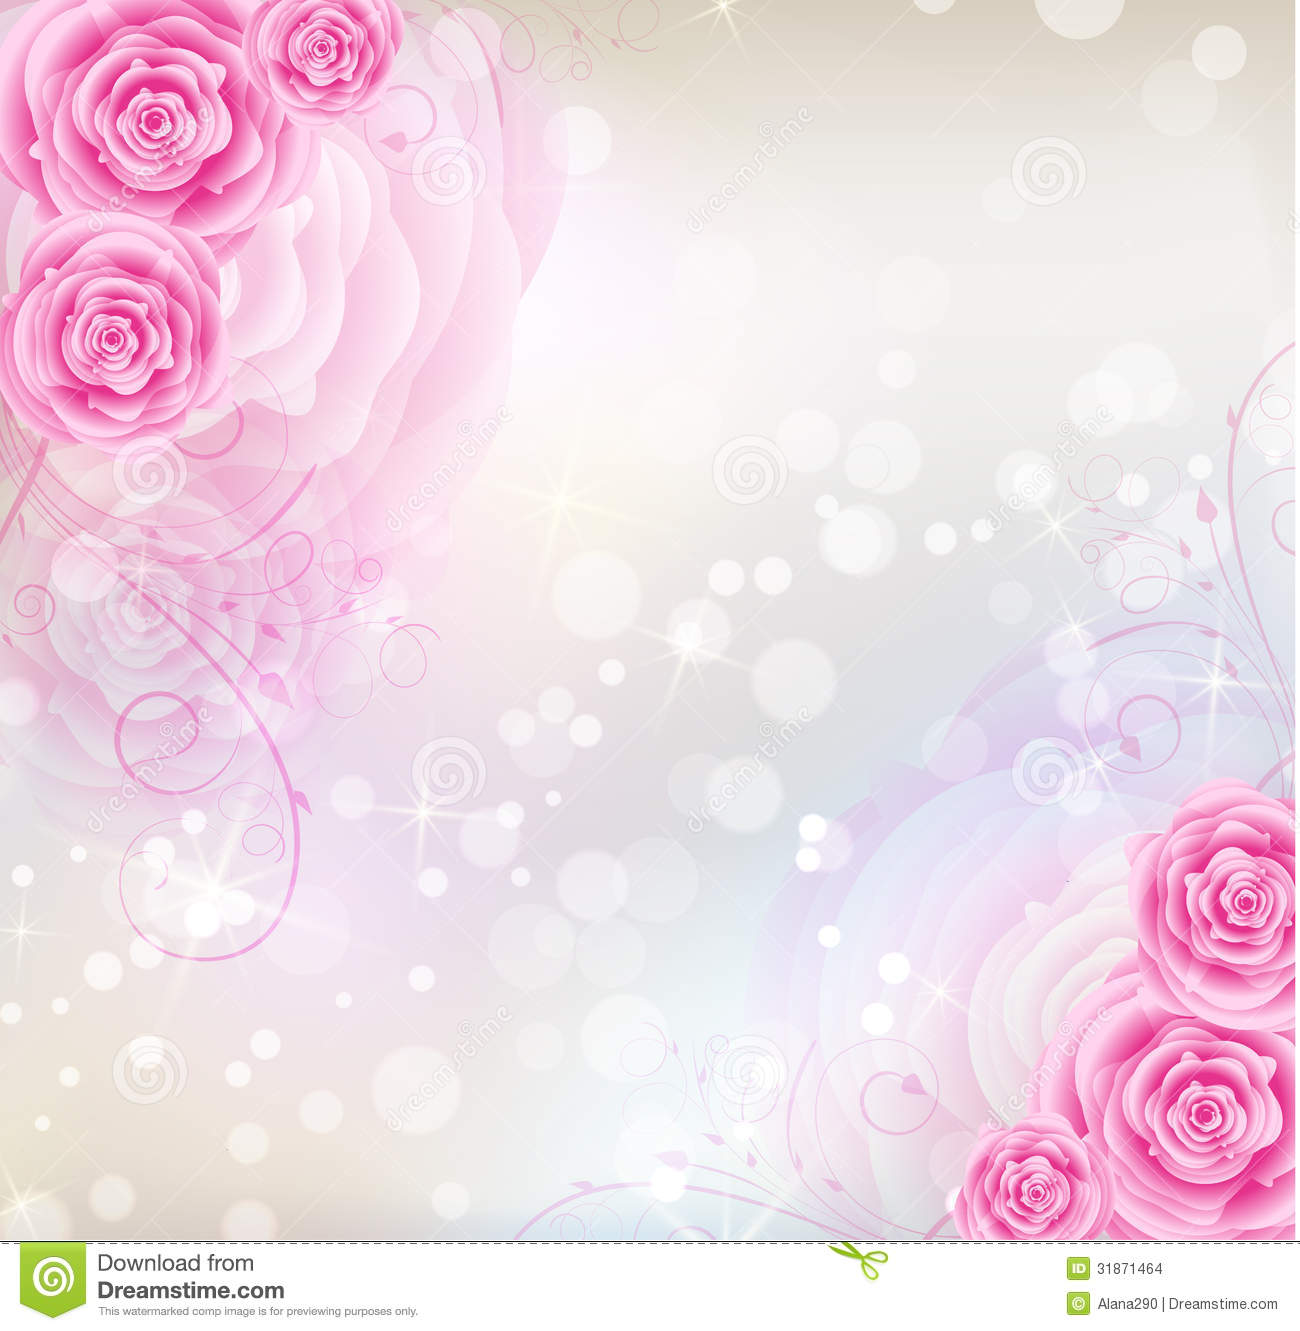 swirly roses background bouquet - photo #13